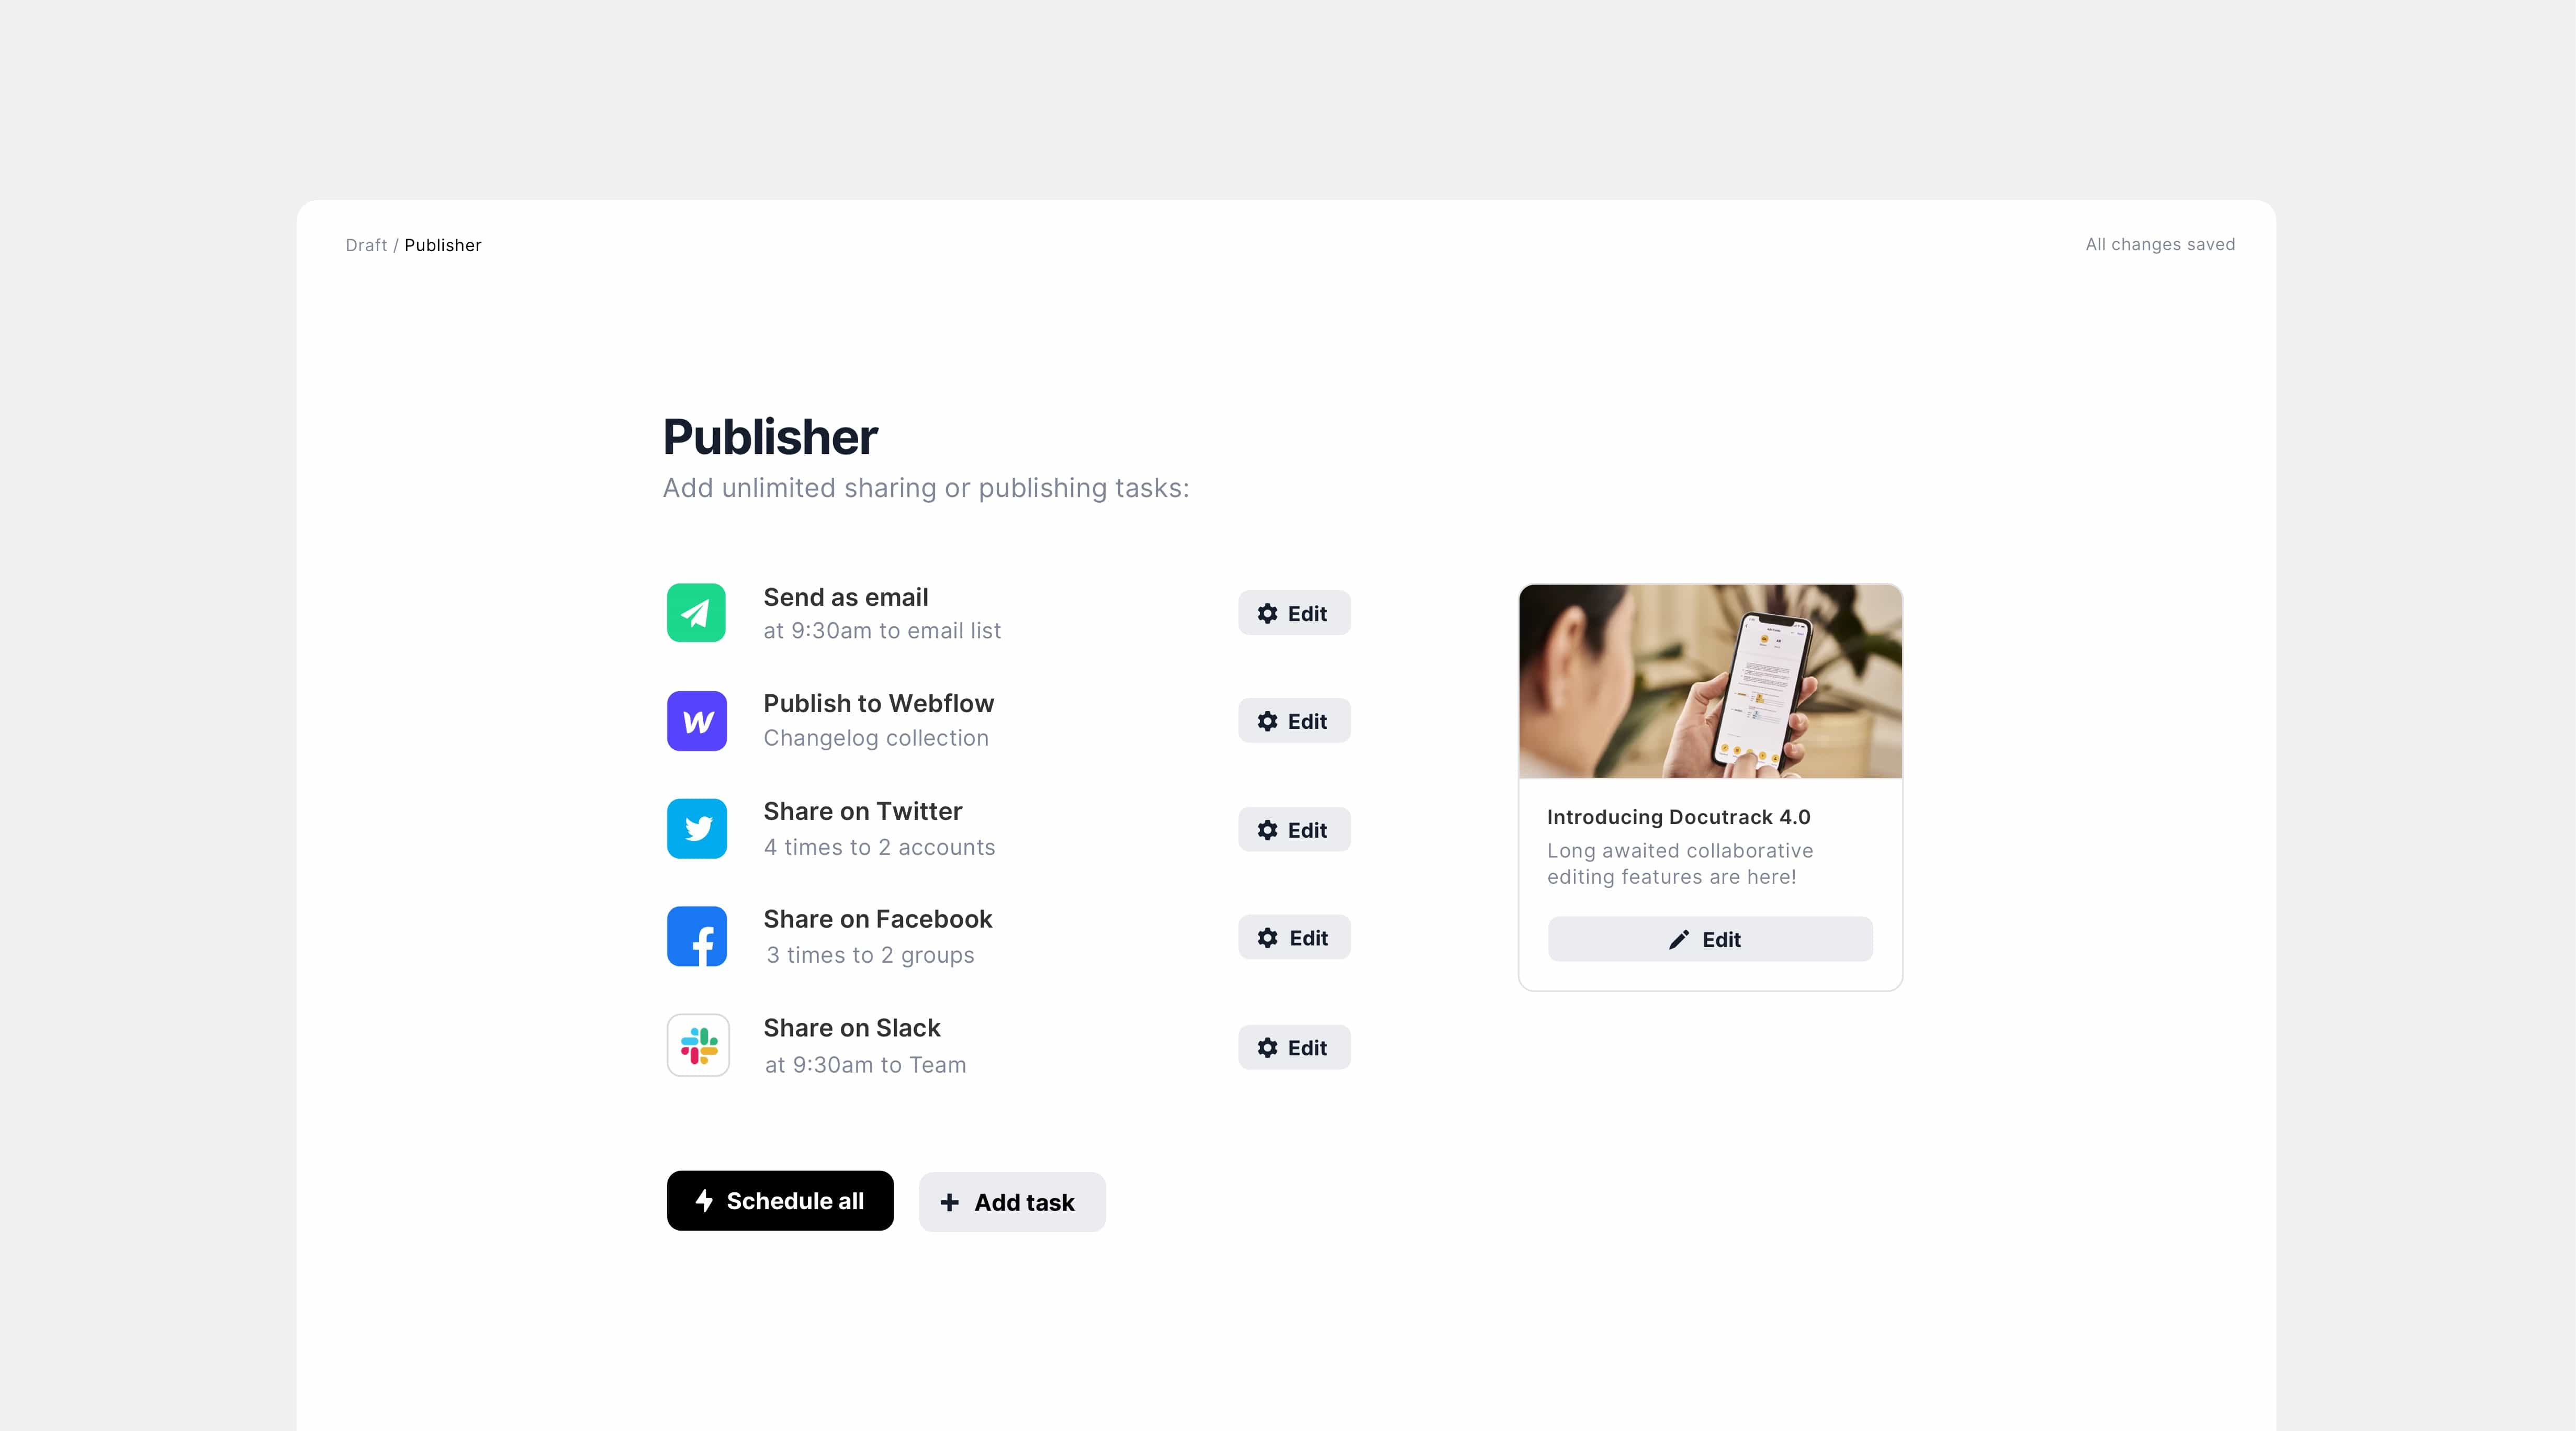 Multichannel publishing and social media scheduling